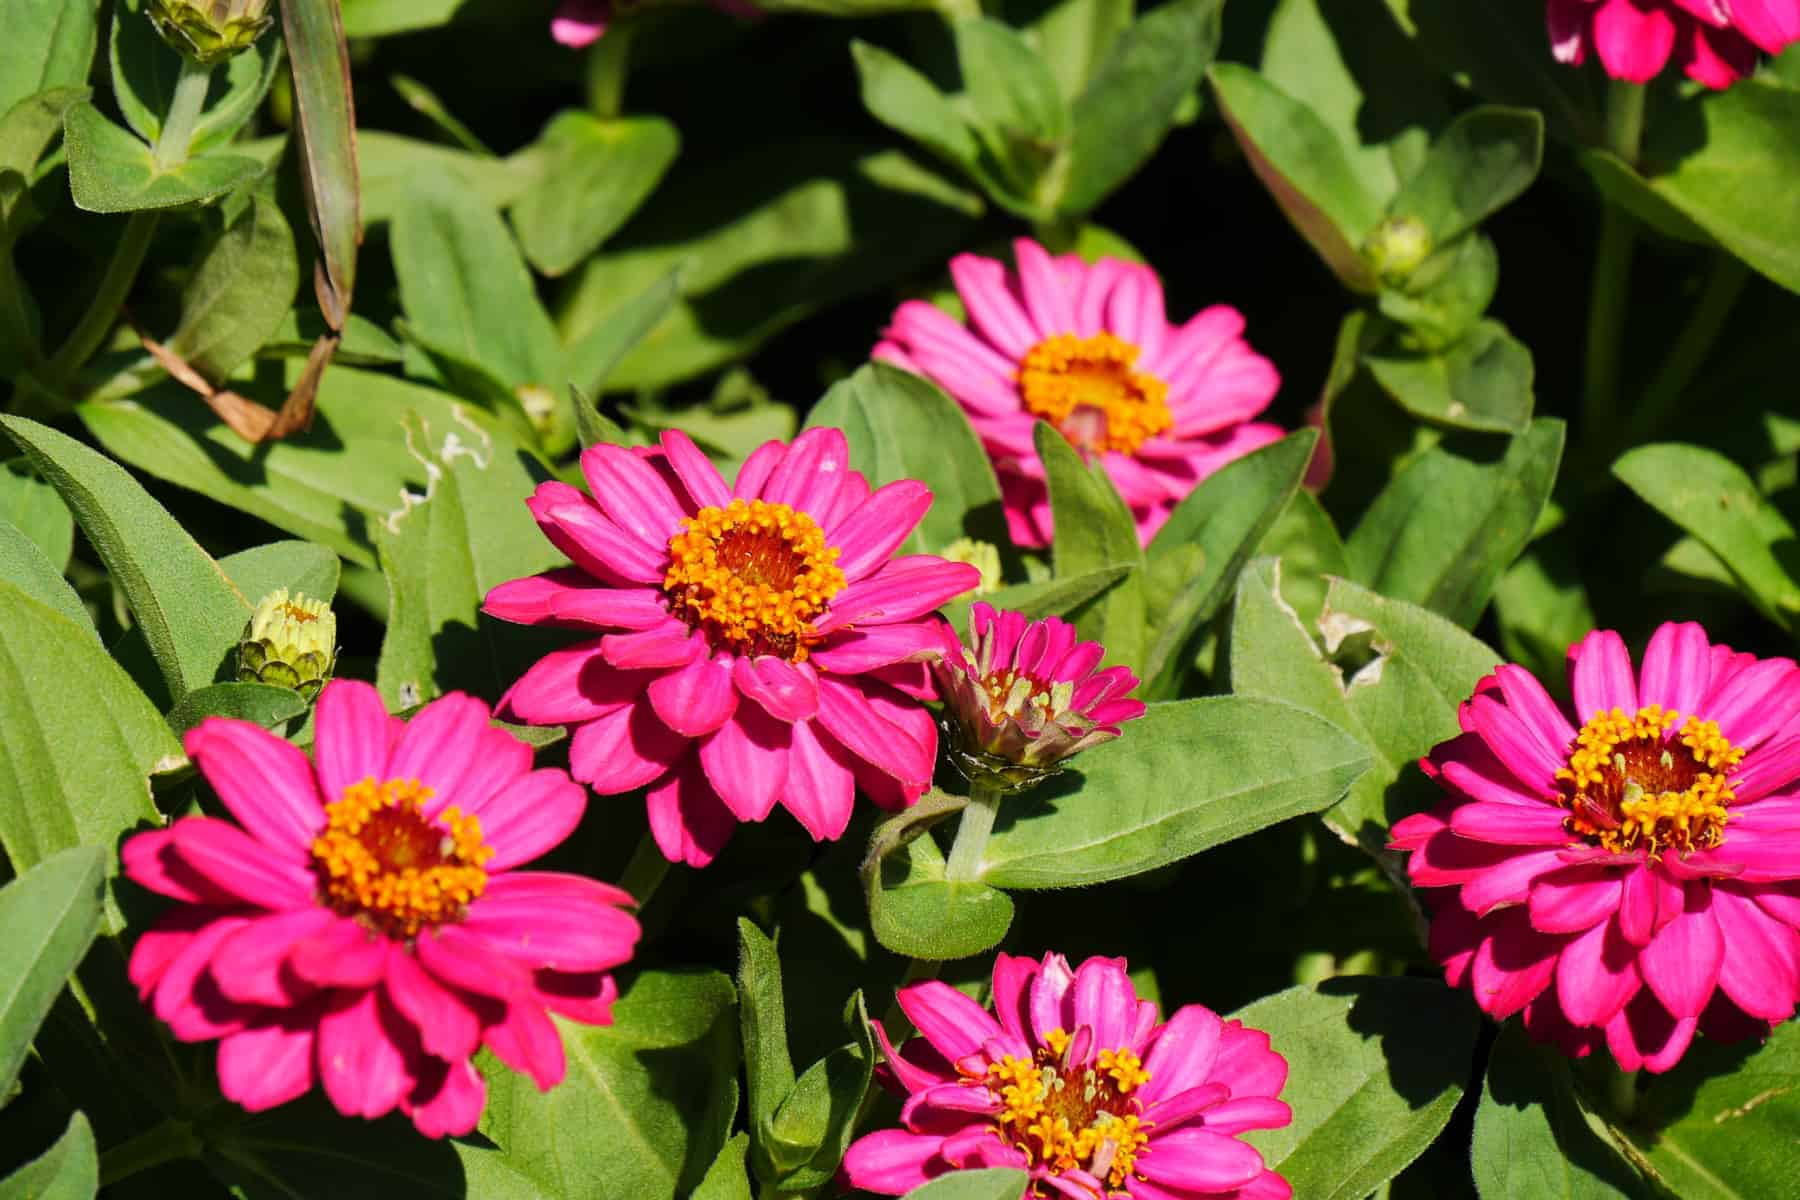 Profusion Zinnia at Humber Arboretum, Toronto - AAS Display Garden